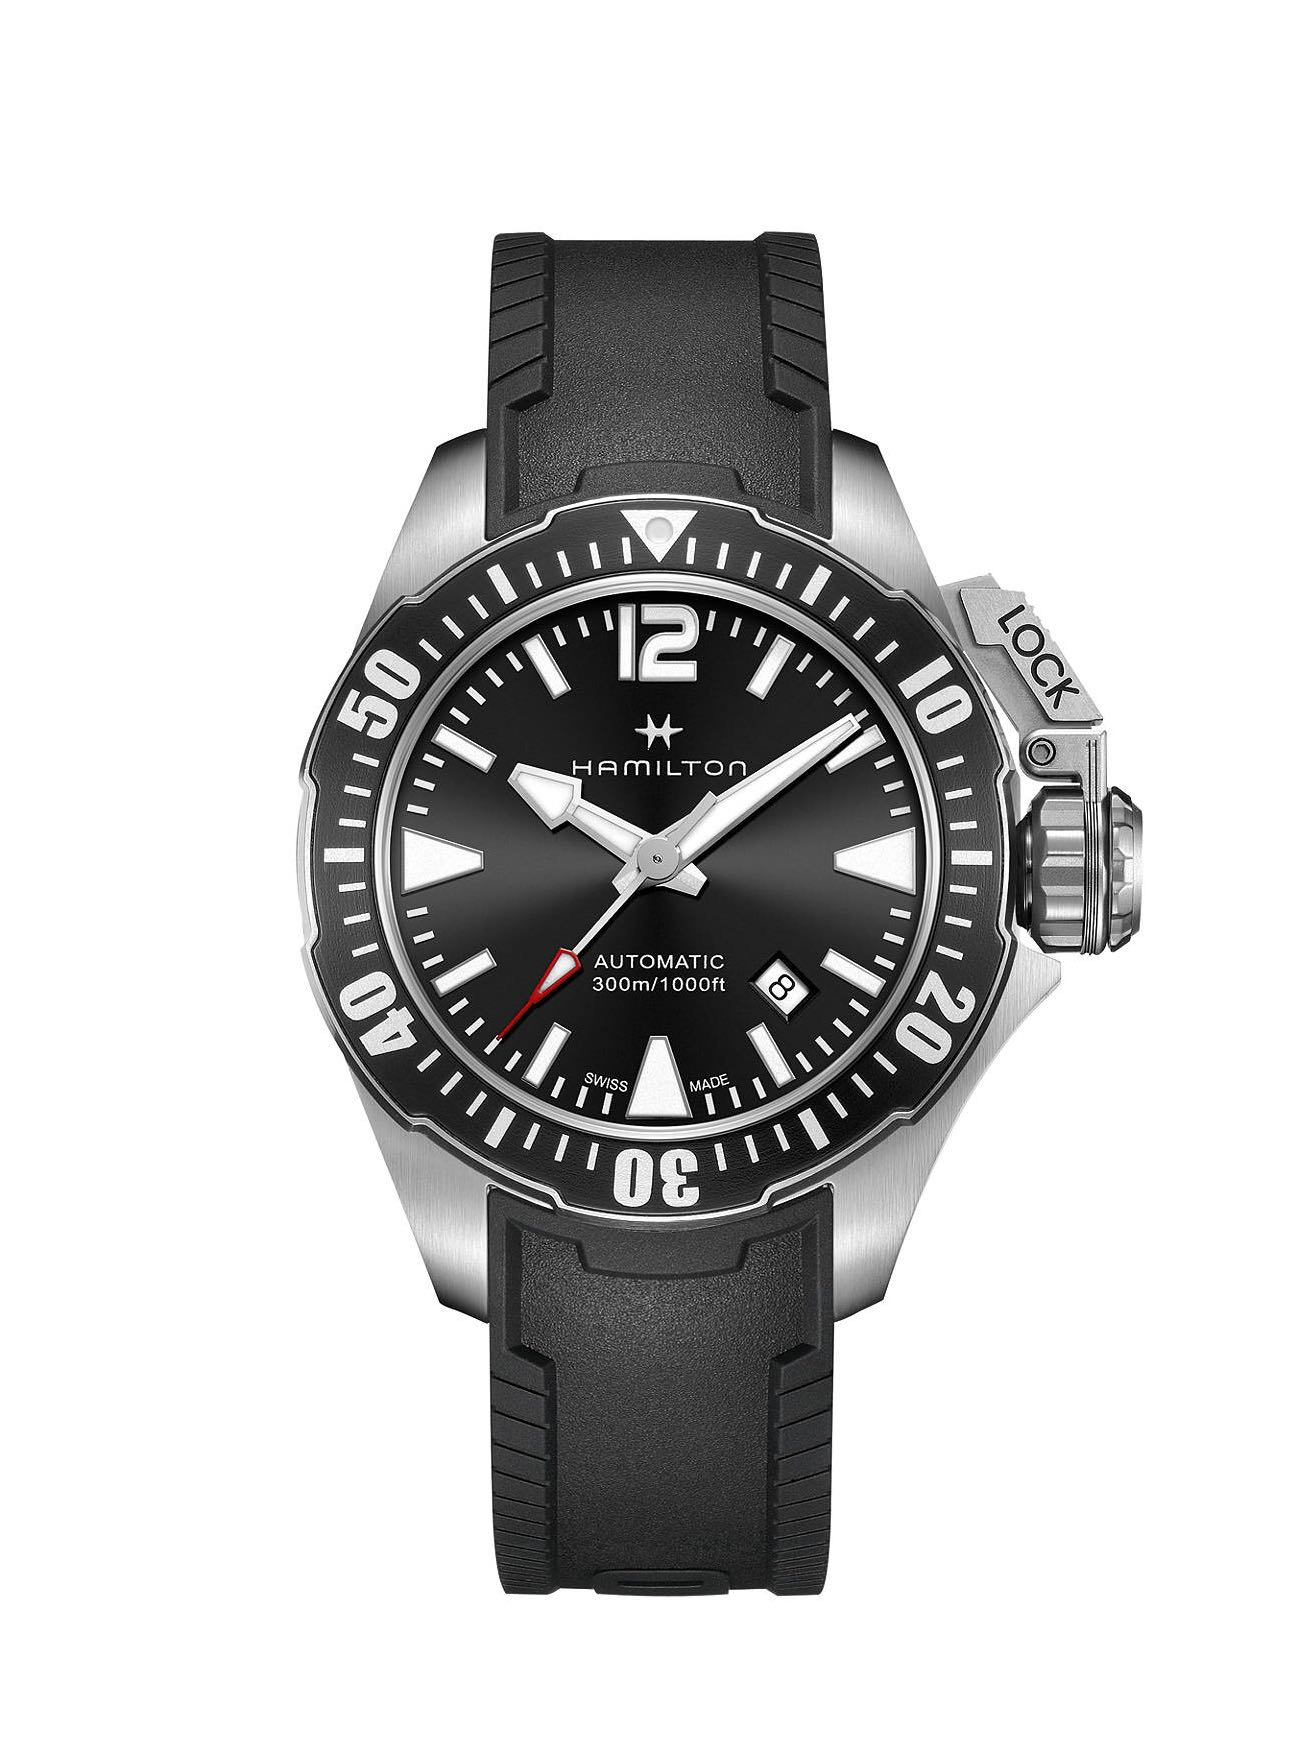 02998ccad Hamilton Khaki Navy Frogman Automatic Watch, Men's Fashion, Watches ...